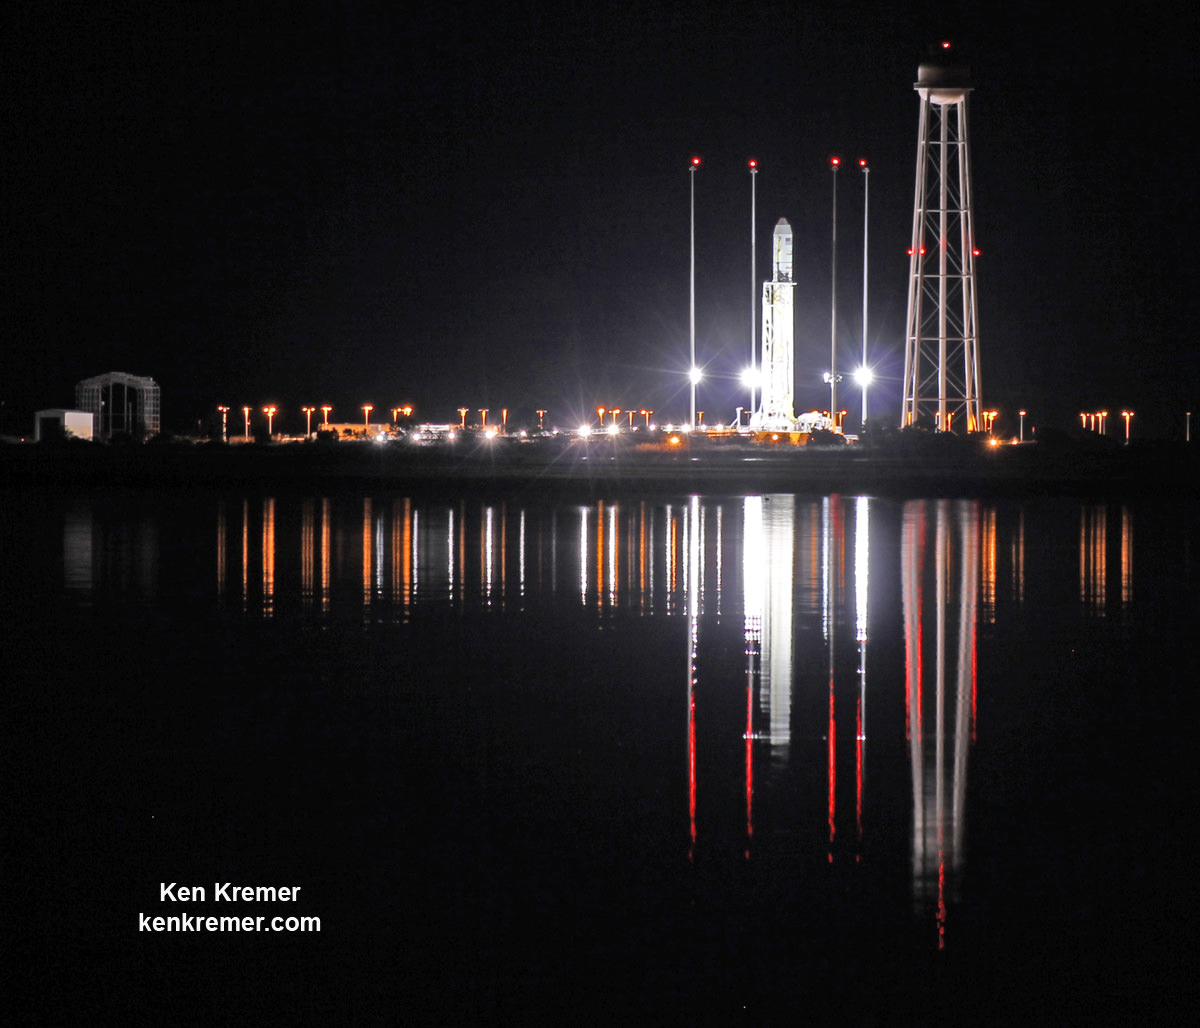 Antares rocket stands erect, reflecting off the calm waters the night before the first night launch from NASA's Wallops Flight Facility, VA, on Oct. 28, 2014.    Credit: Ken Kremer/kenkremer.com